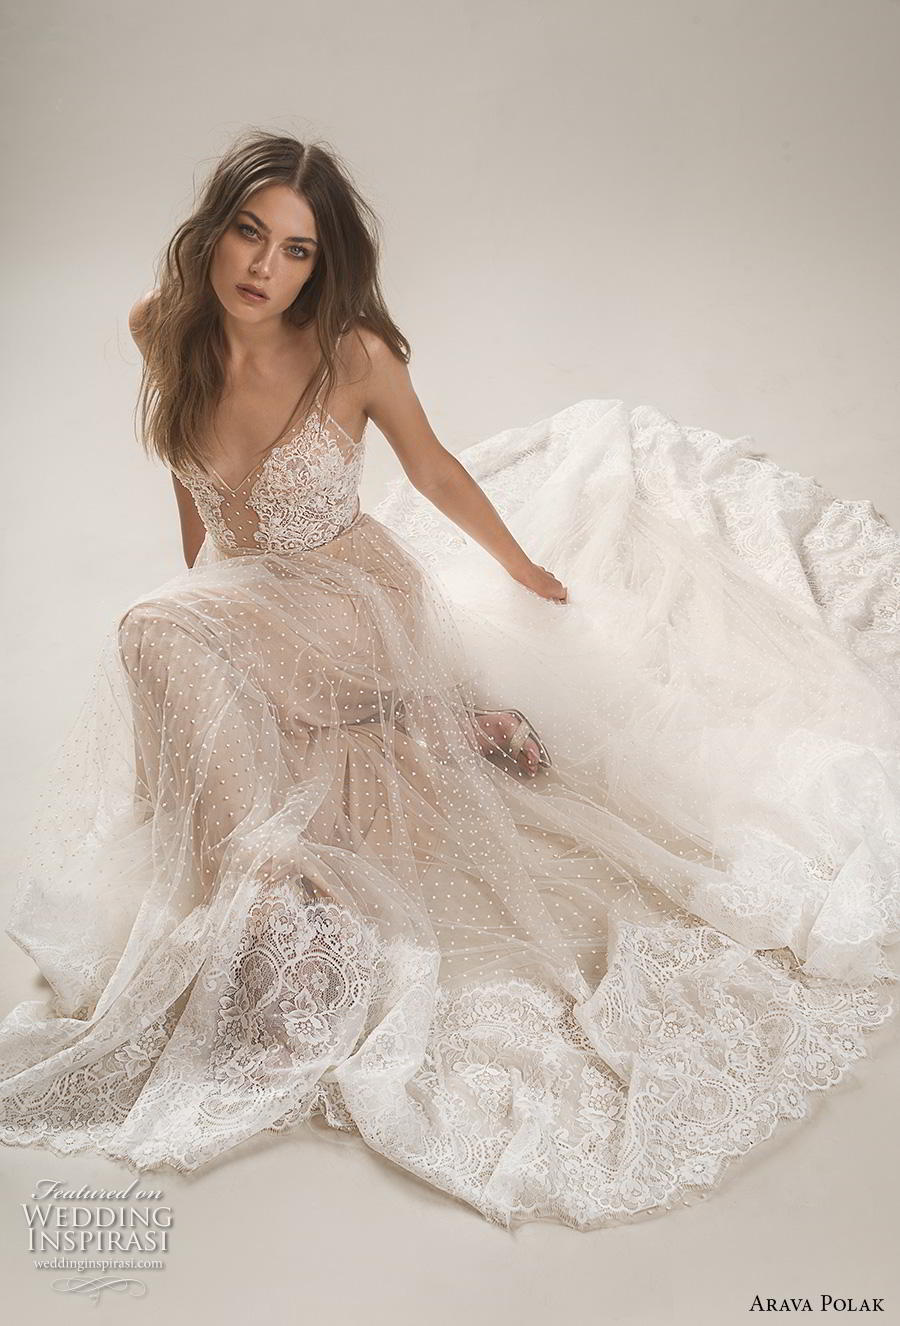 arava polak 2019 bridal sleeveless spaghetti strap deep sweetheart neckline heavily embellished bodice romantic a line wedding dress backless chapel train (1) mv